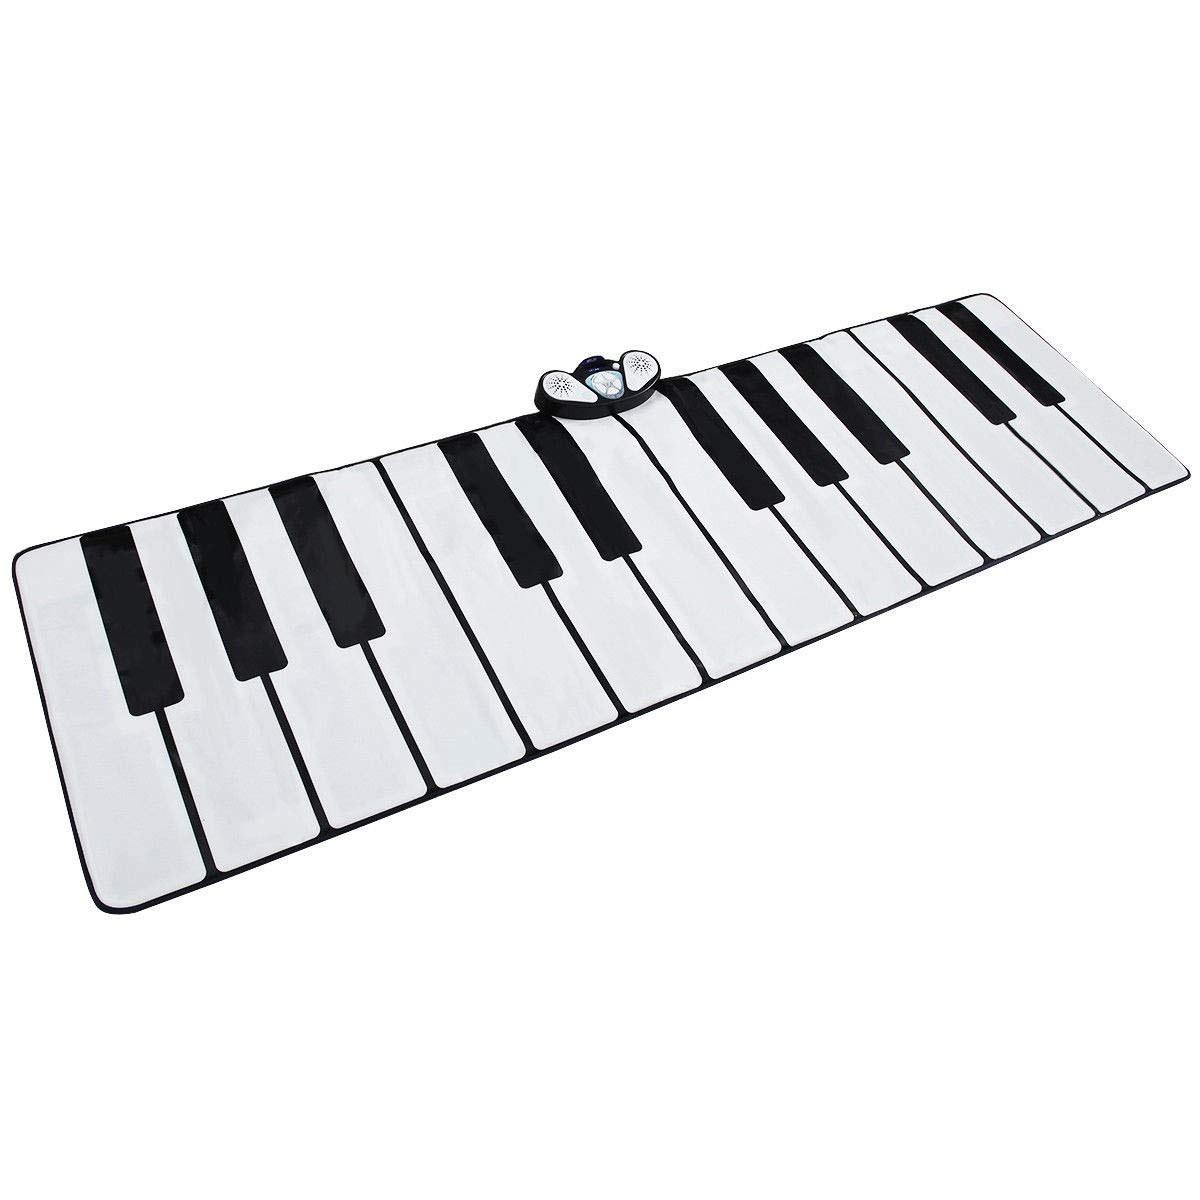 Dayanaprincess 24 Key Gigantic Piano Keyboard with 9 Instrument Settings Digital Musical Instrument Fun OPP PE Record Demo Kids Children Gift Durable by Dayanaprincess